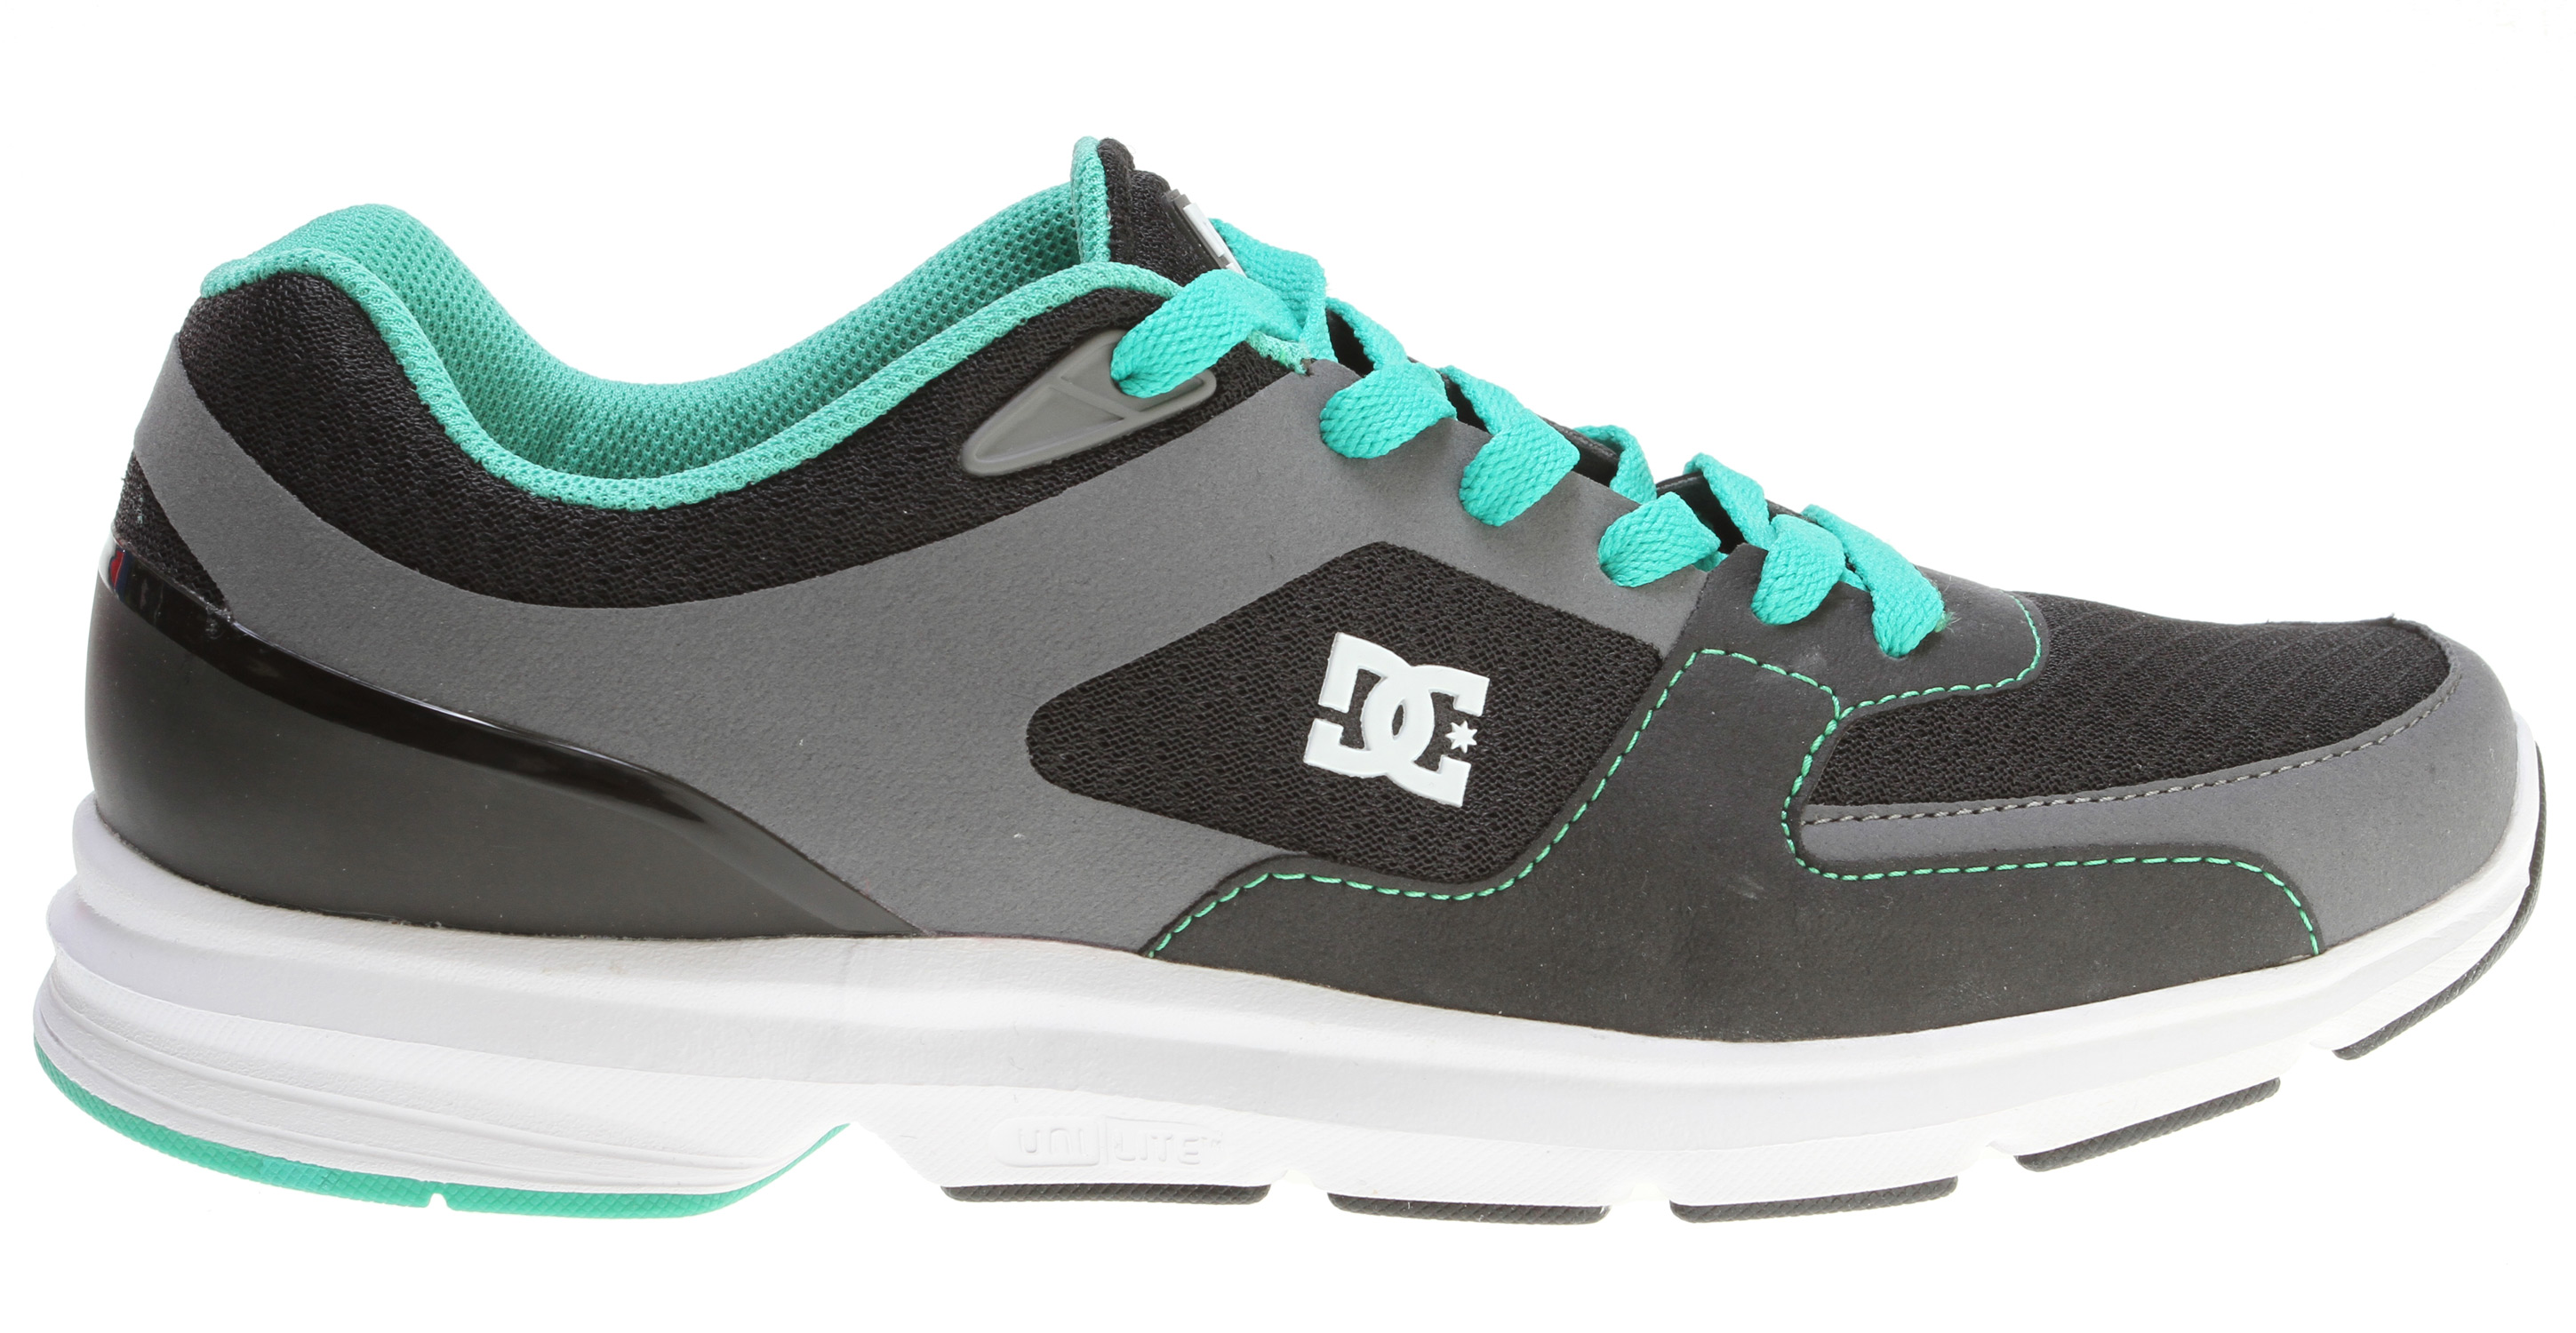 "Skateboard The combination of style and comfort make this the quintessential team shoeKey Features of the DC Boost Skate Shoes: Lightweight, flexible jogger Features DC's revolutionary unilite technology Progressive no-sew technology with mesh underlays for minimal stitch lines and reduced weight Lightweight mesh tongue bottom Molded logo details DC's trademarked ""Pill Pattern"" bottom - $44.95"